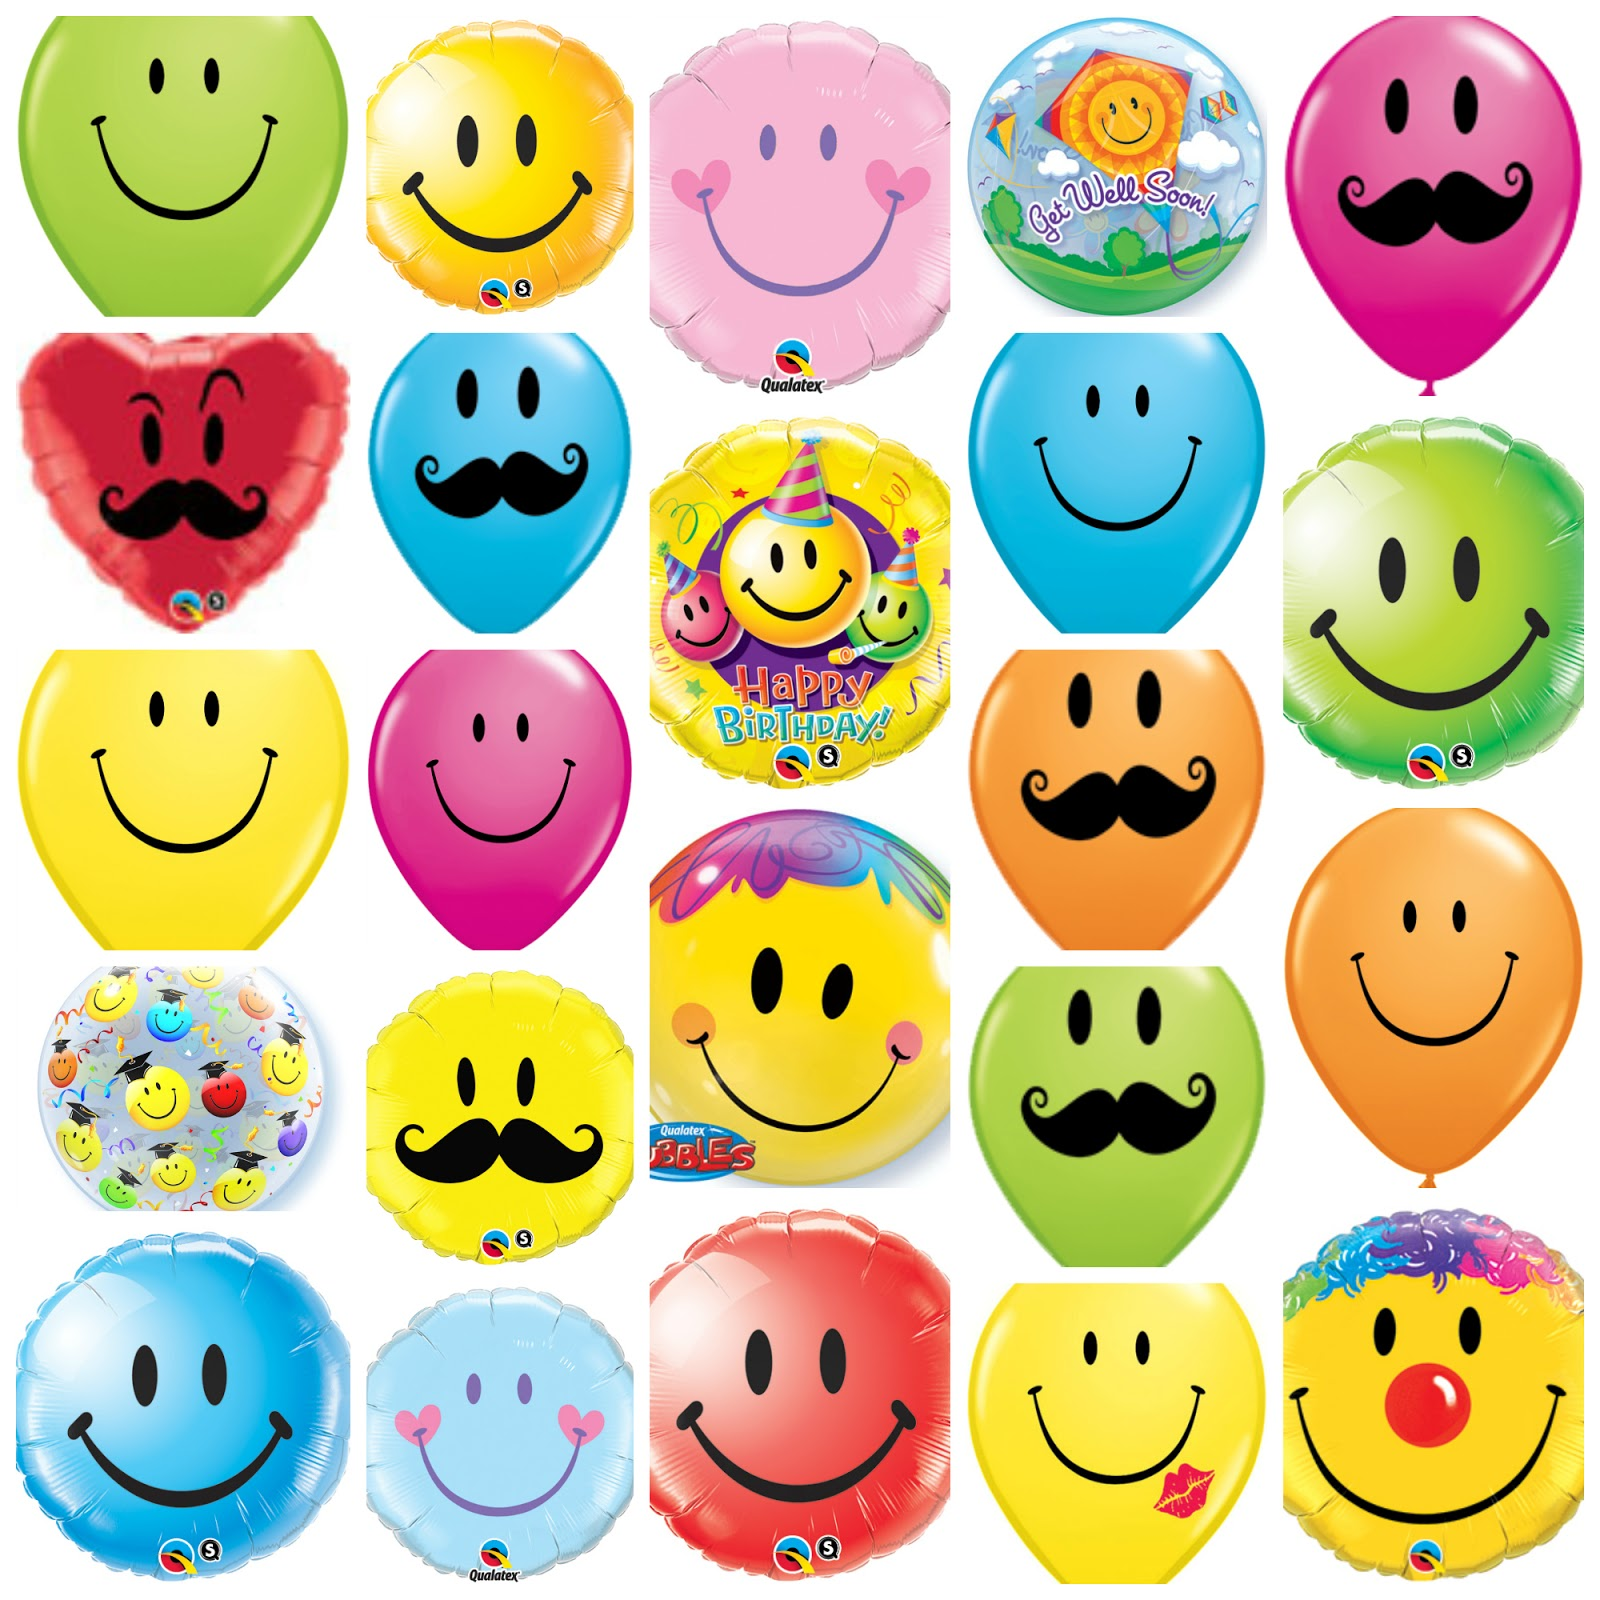 Funny balloon faces - A Few Of The Wonderful Smile Face Balloons In The Qualatex Range